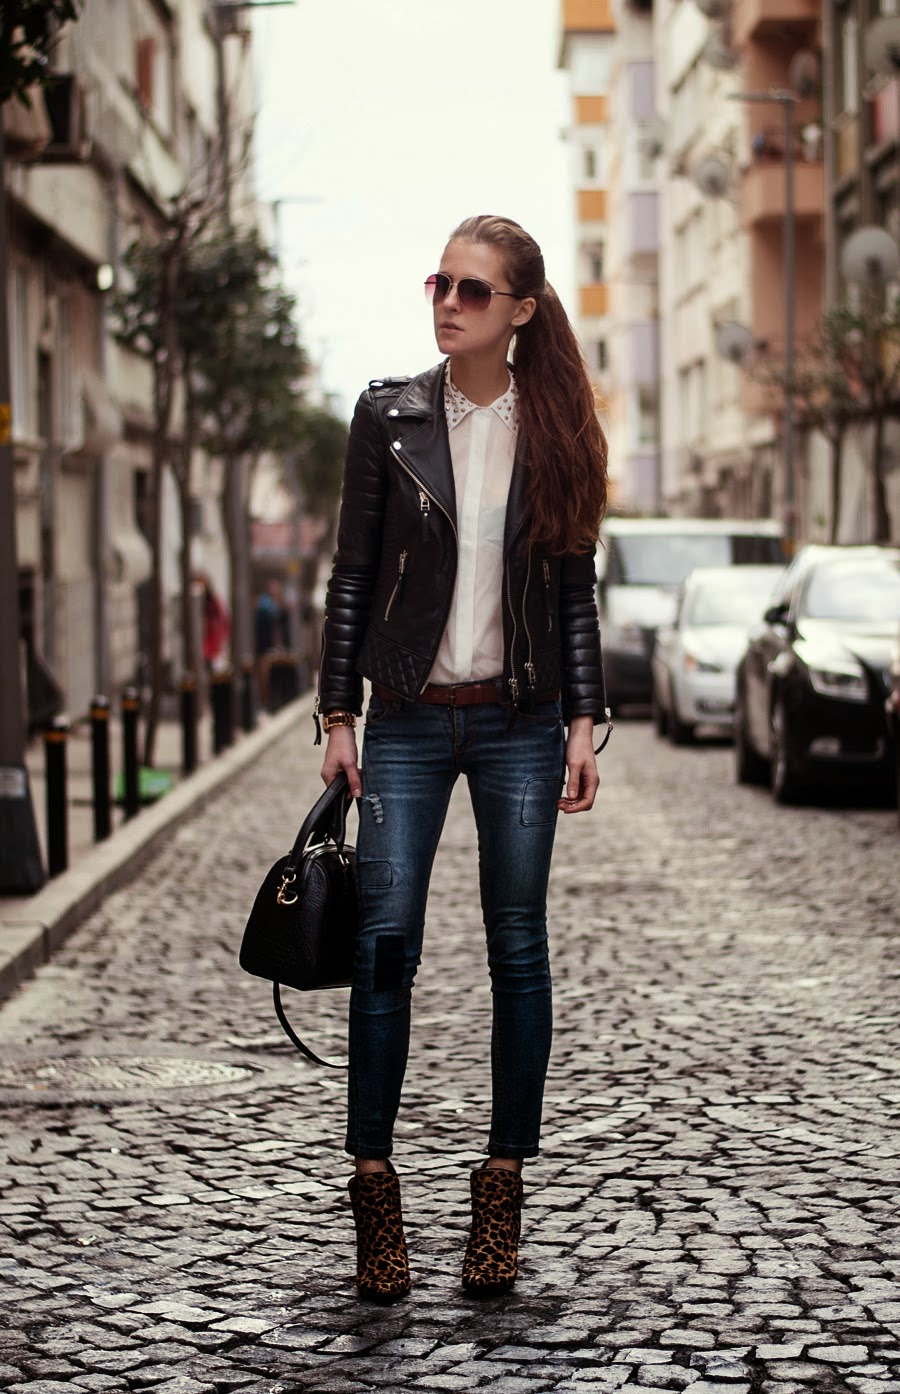 Leather jackets, white shirt, skinnies and cheetah print high heels